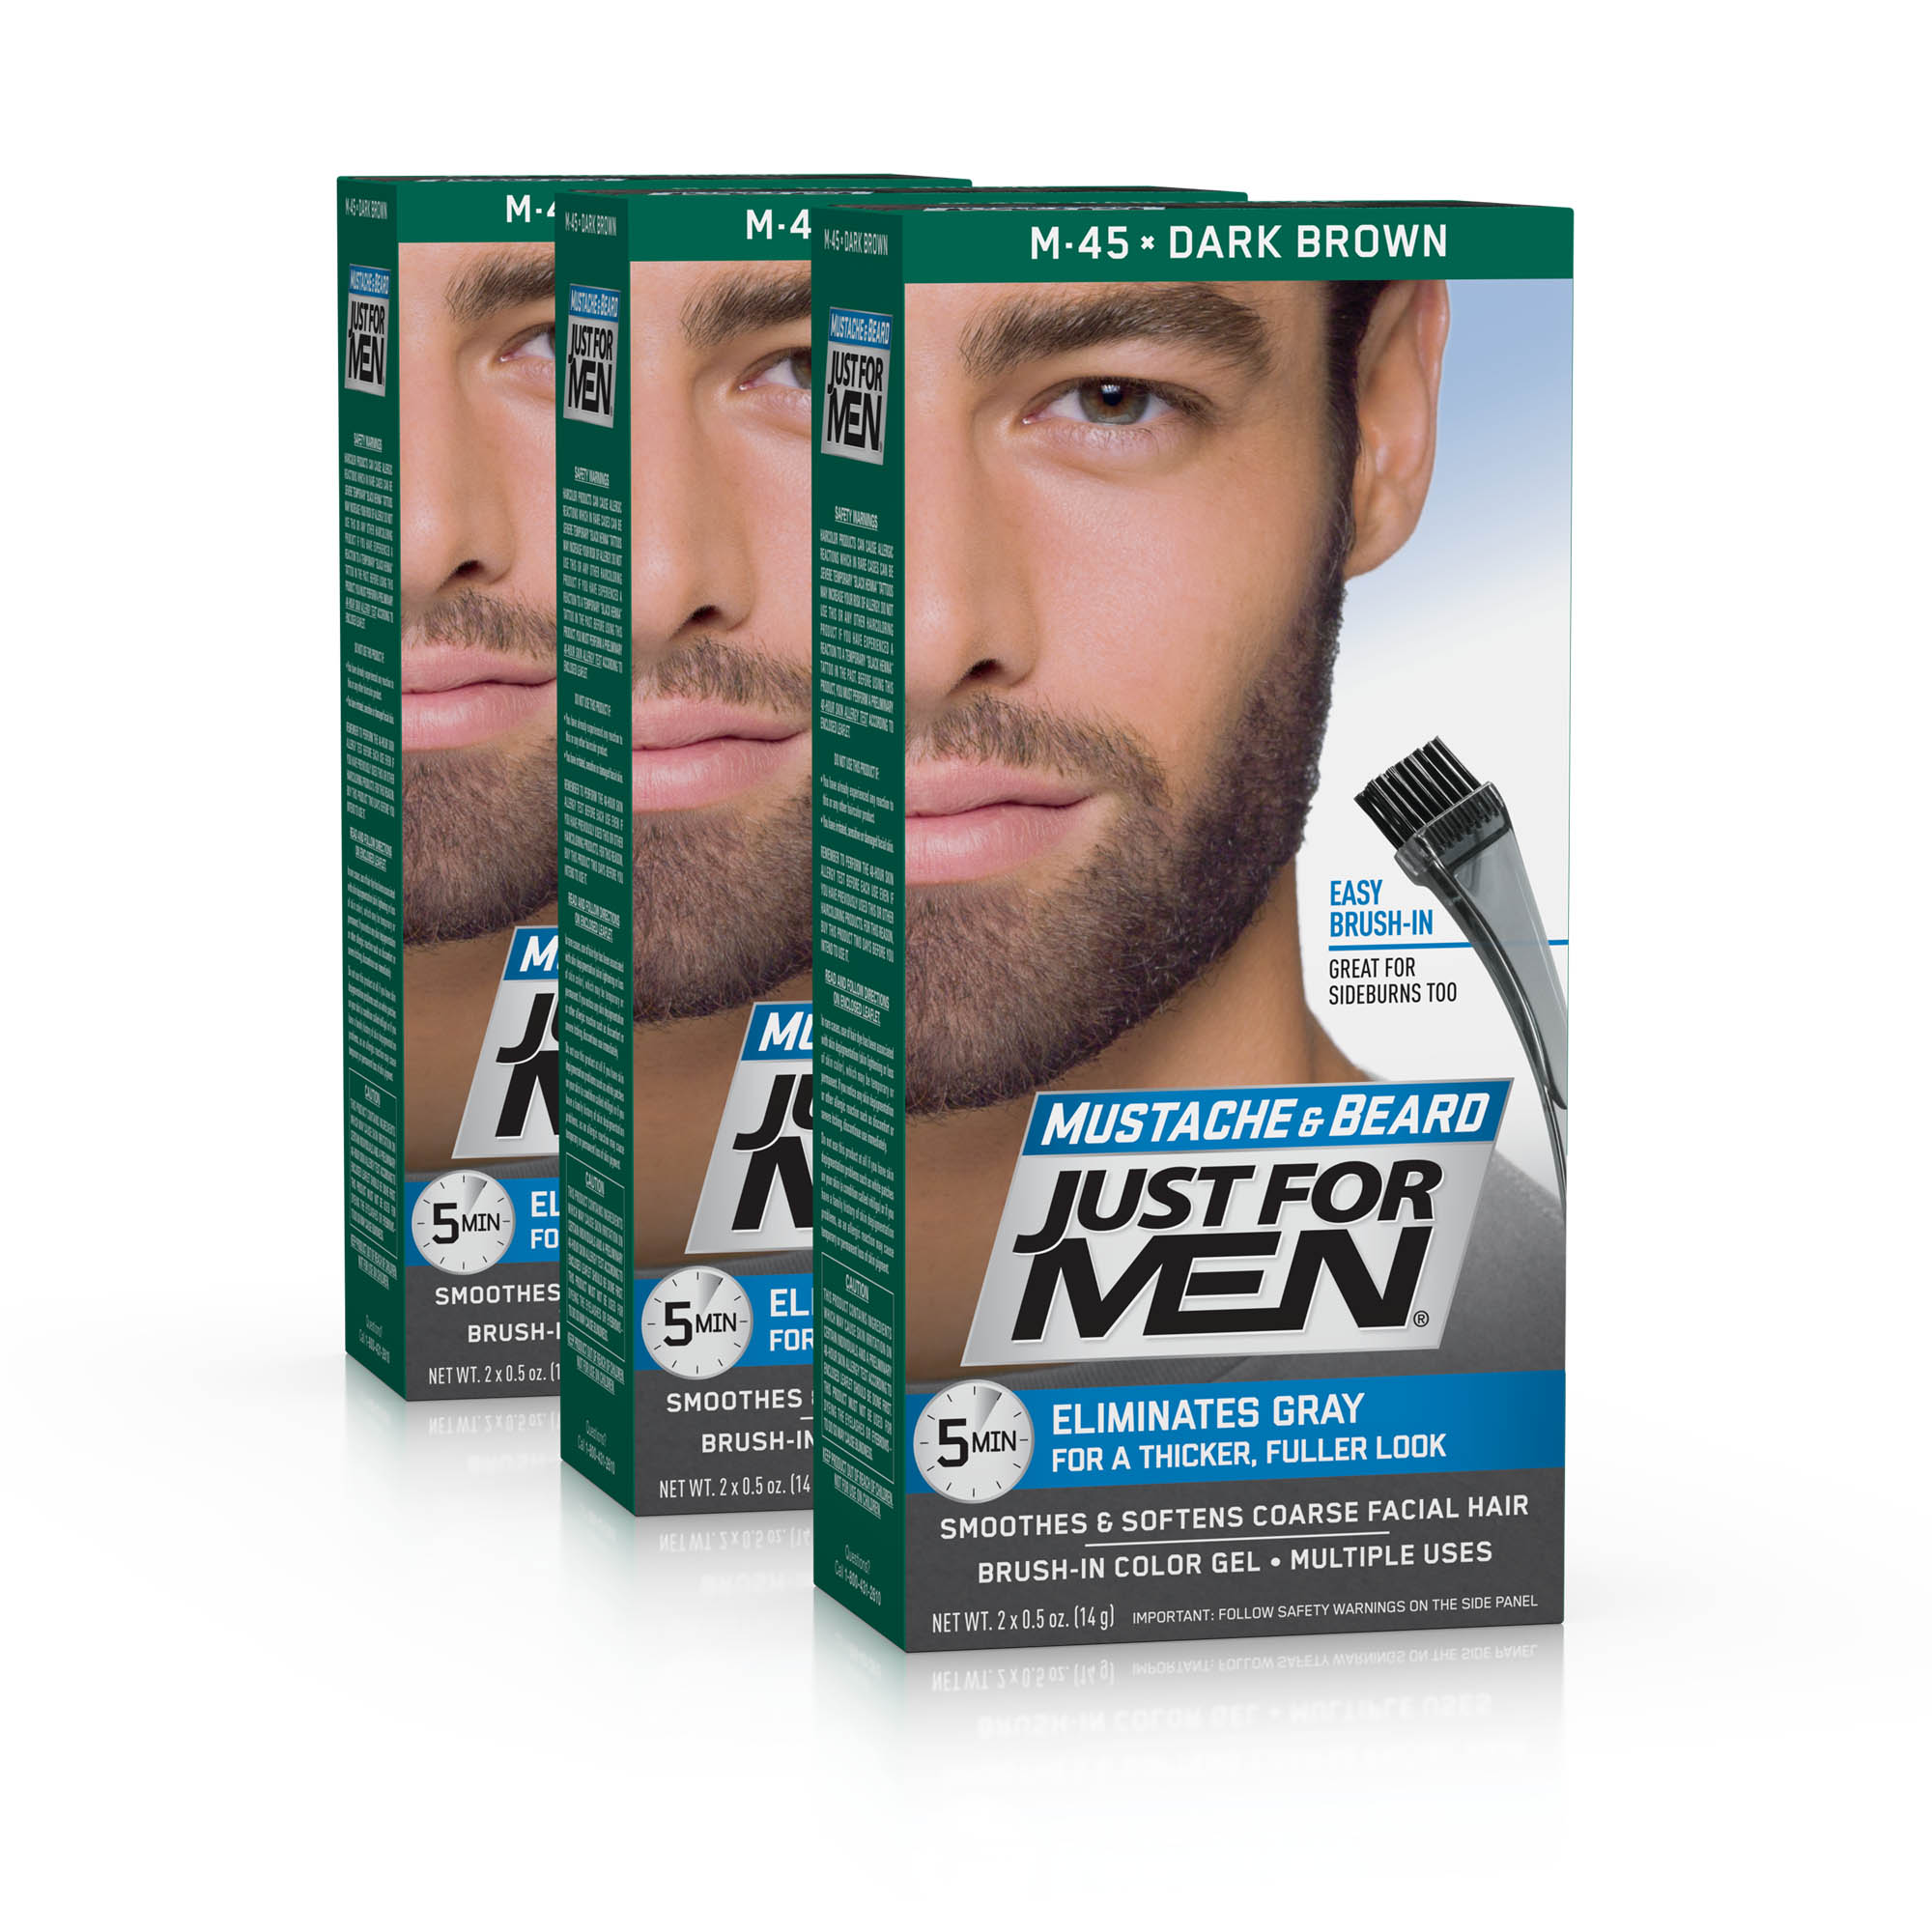 Just For Men Mustache and Beard, Easy Brush-In Facial Hair Color Gel, Dark Brown, Shade M-45 (Pack of 3)